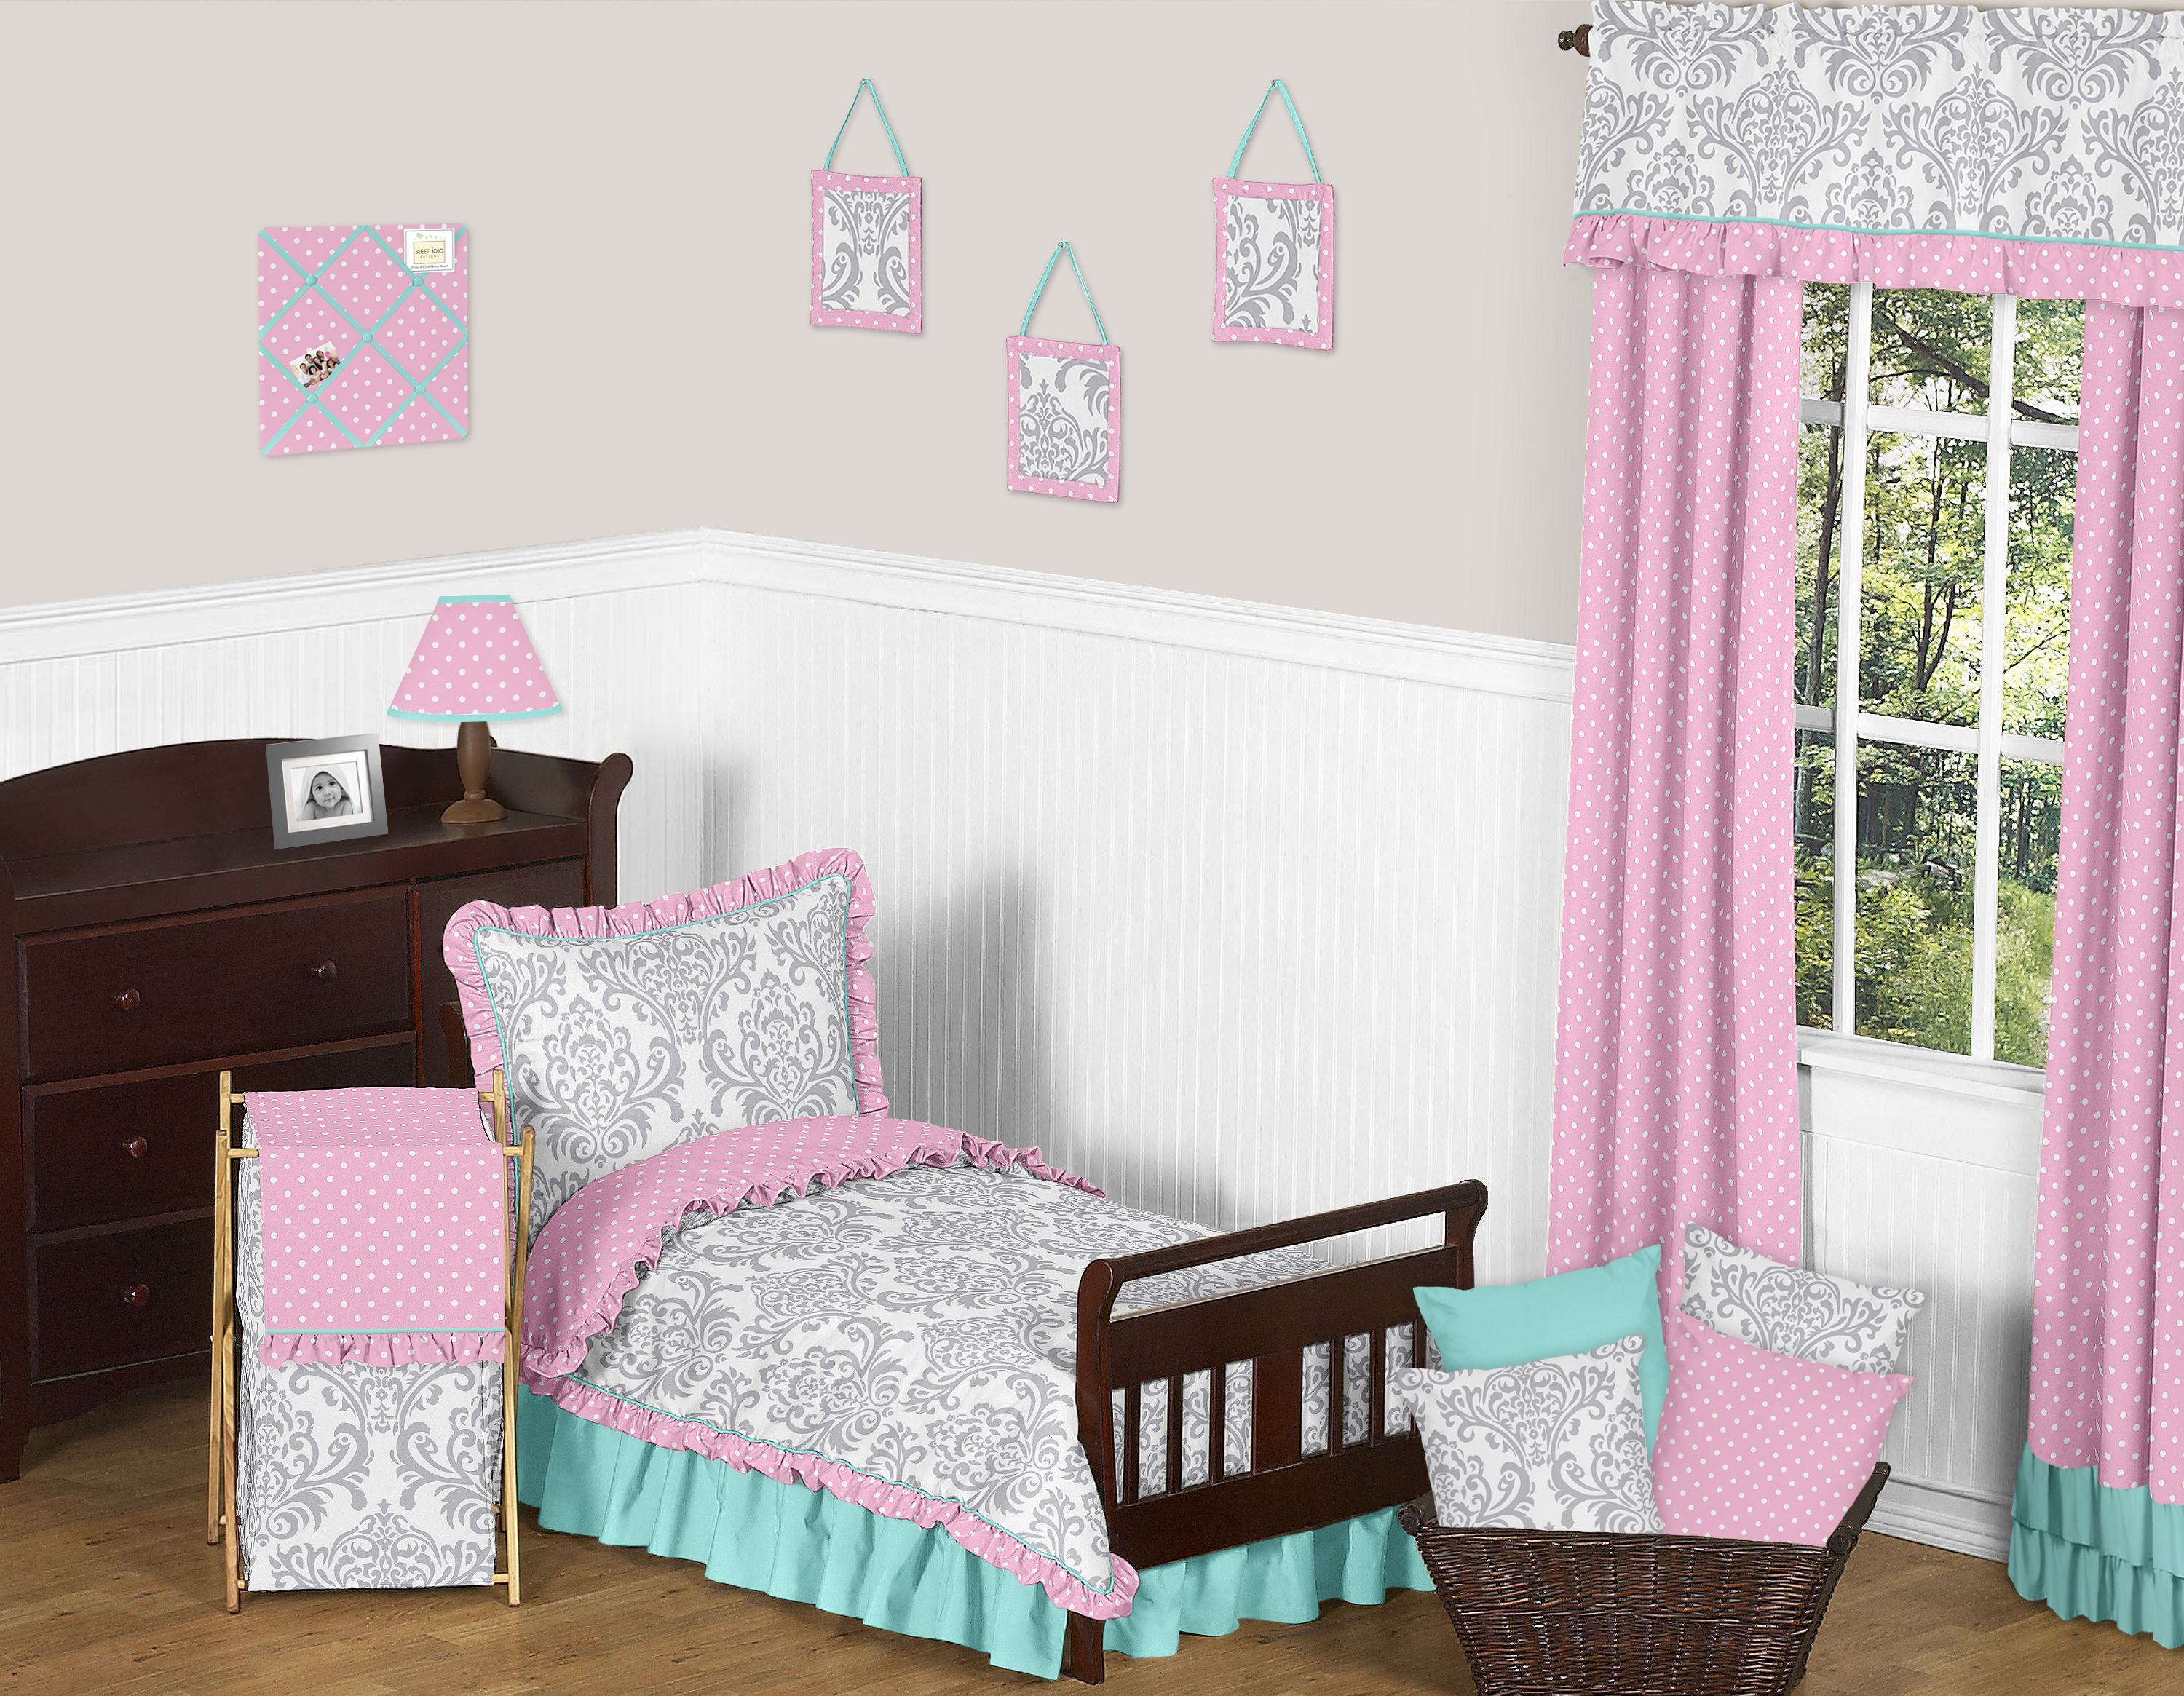 Sweet Jojo Designs Pink Gray and Turquoise Skylar Toddler Bedding 5pc Girls Set by Sweet Jojo Designs